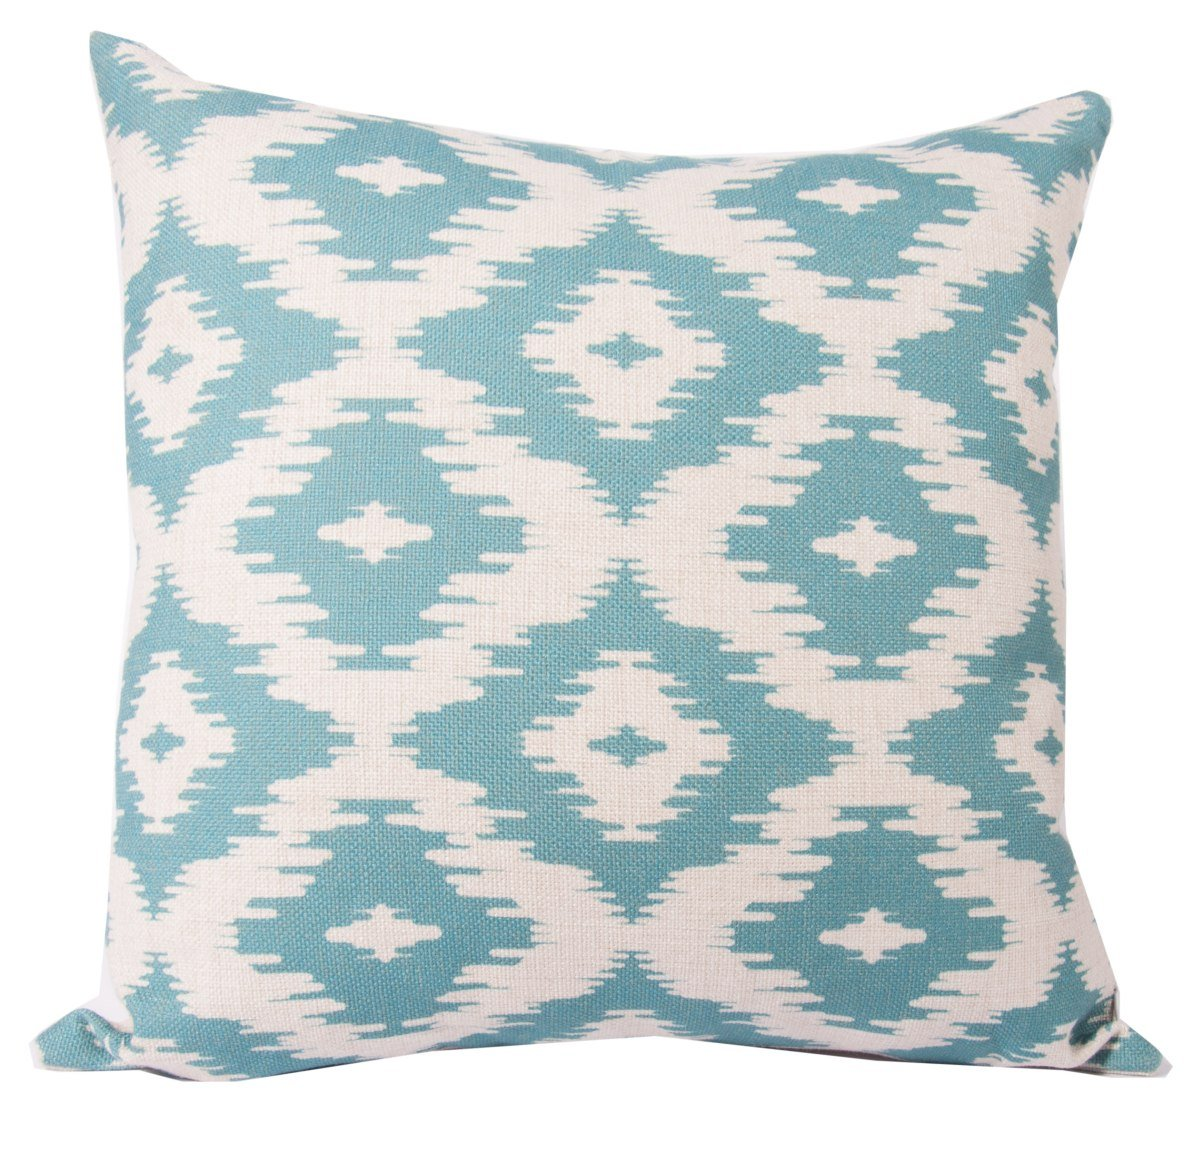 Naida Cushion Cover-fliphome.com.au